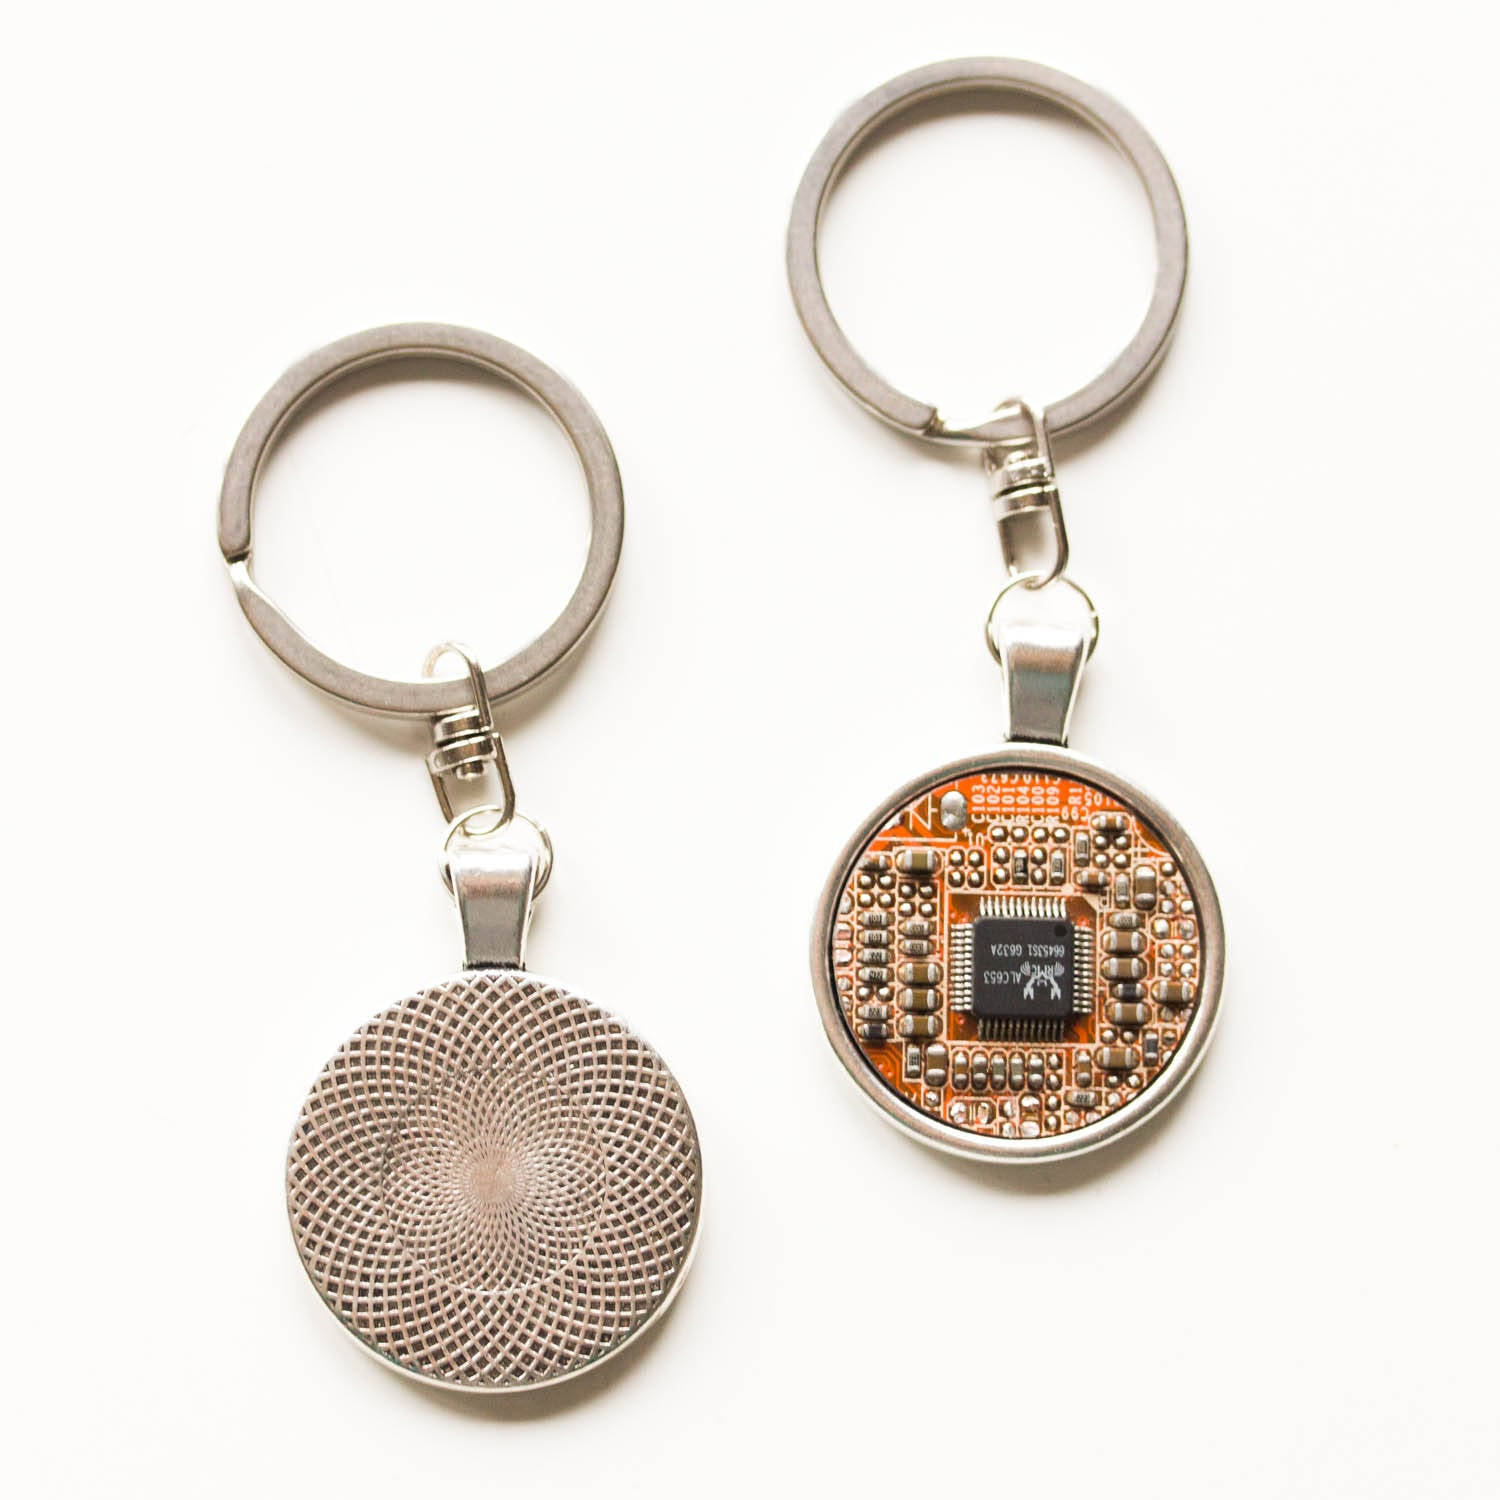 Keychains And Money Clips Recomputing Copper Recycled Circuit Board Earrings Dangle Keychain